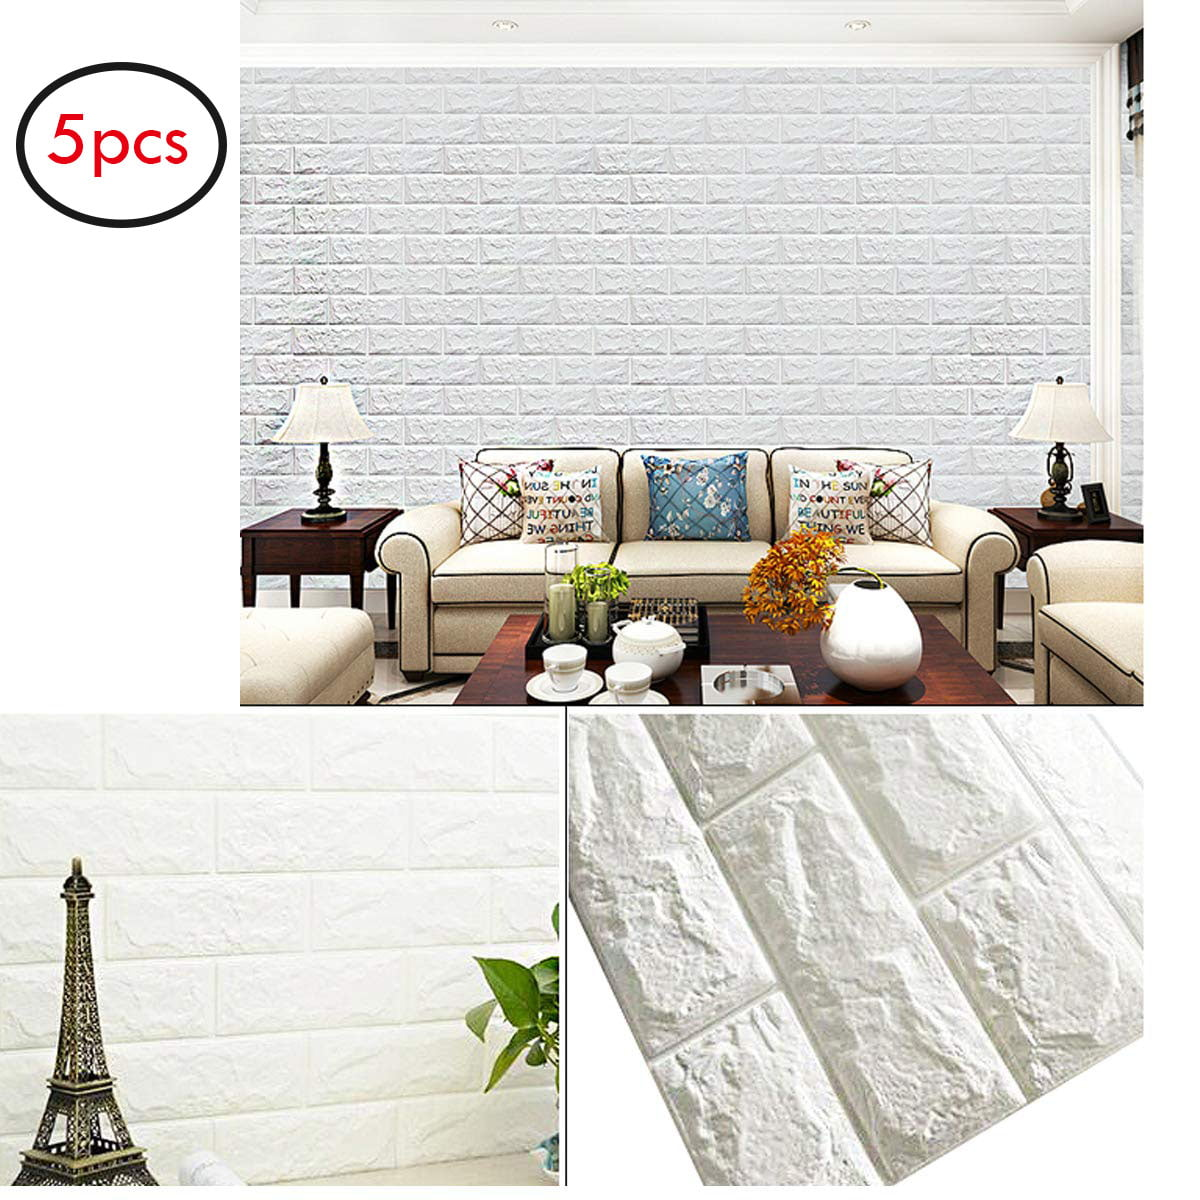 Peel And Stick Wallpaper In Bathroom: 5PCS 3D Brick Wallpaper Peel And Stick Panels Wall Decor